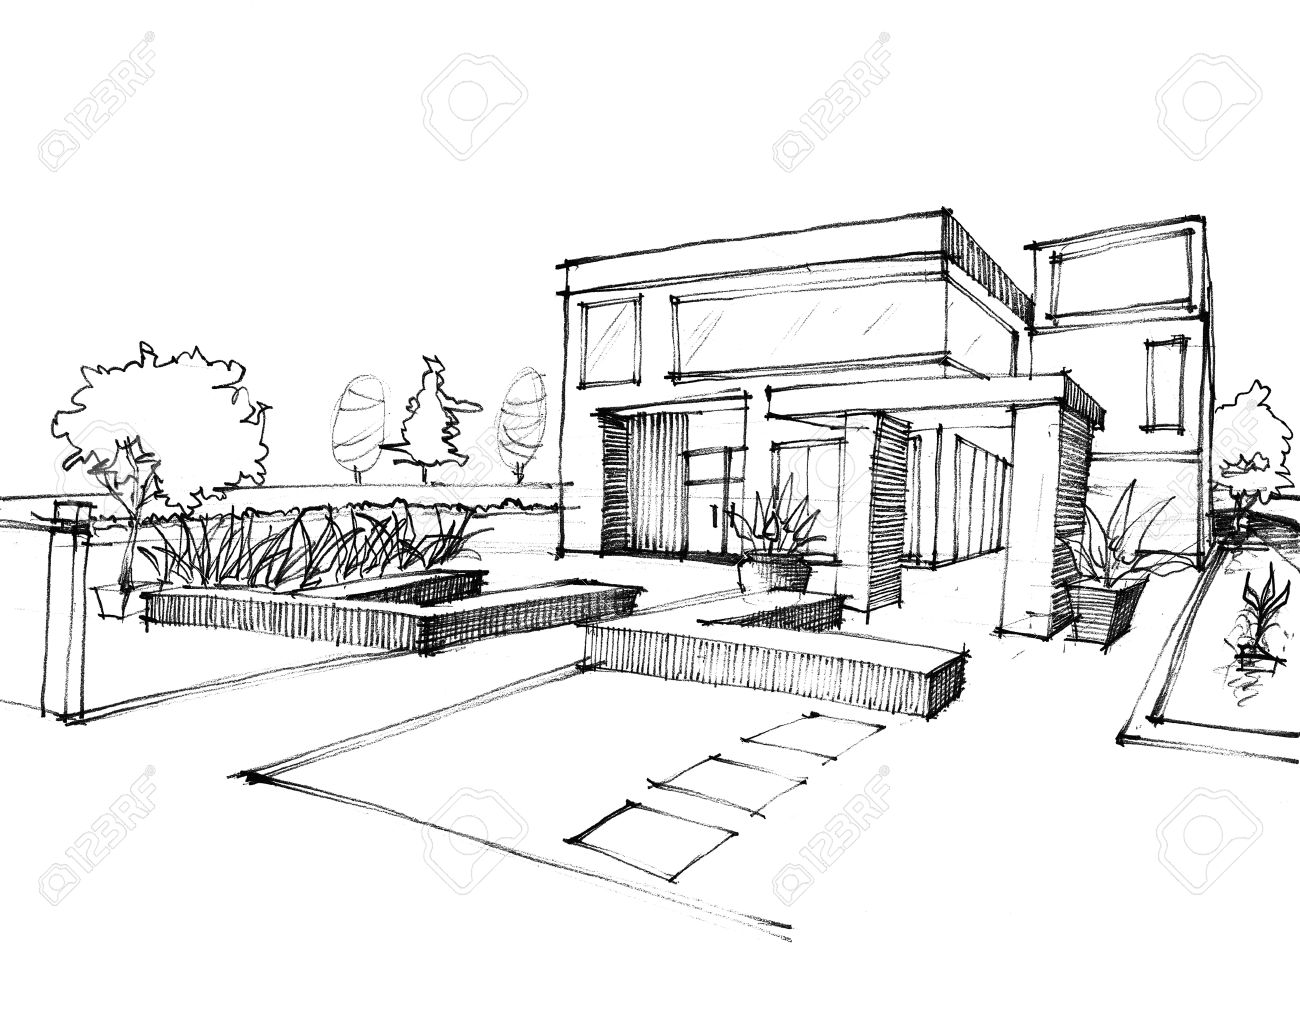 Home Sketch Design On White Paper Stock Photo Picture And Royalty